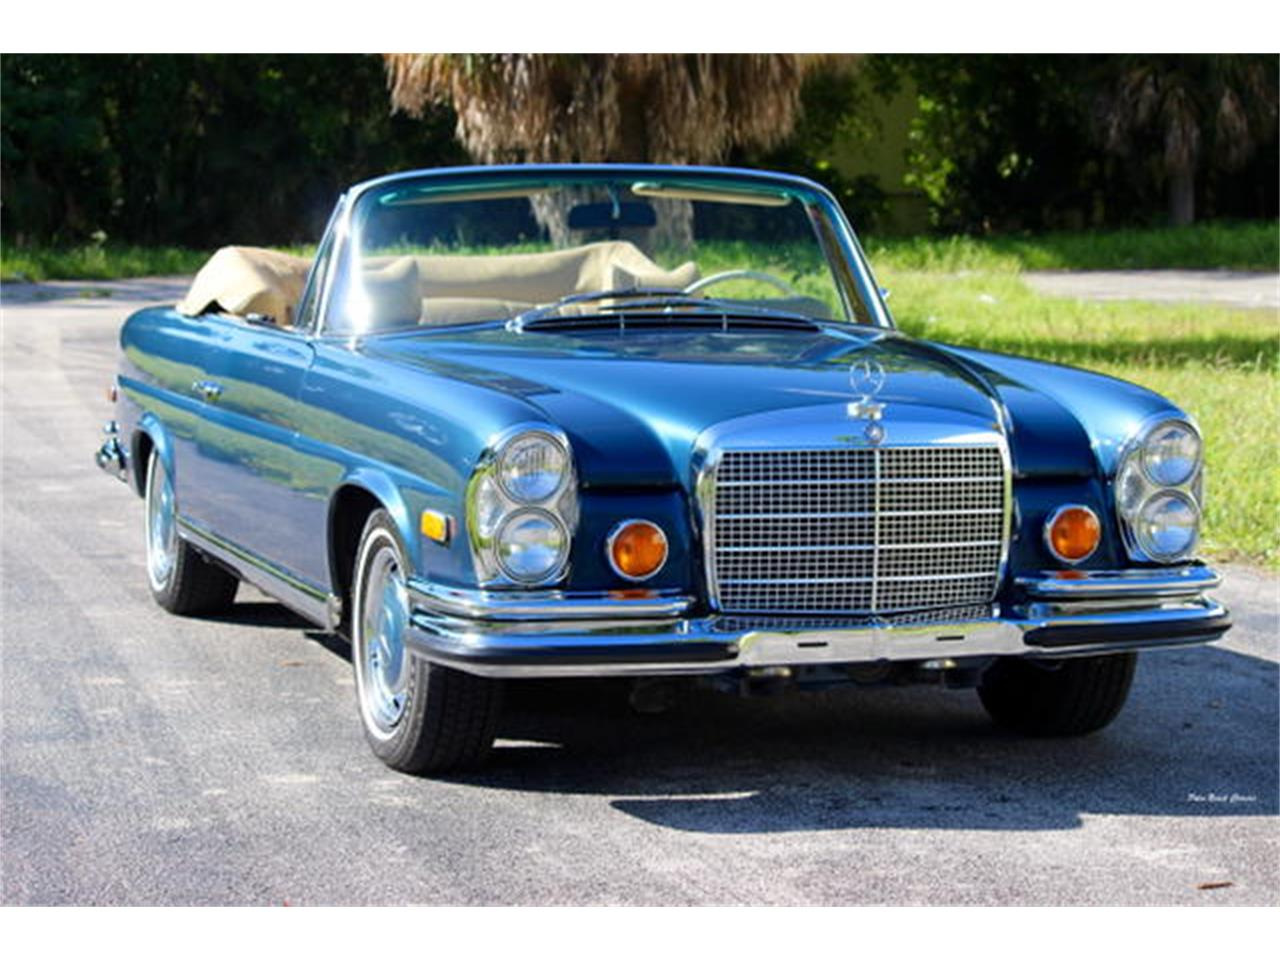 Large Picture of Classic '71 280SE located in Florida Offered by The Toy Store - L75C